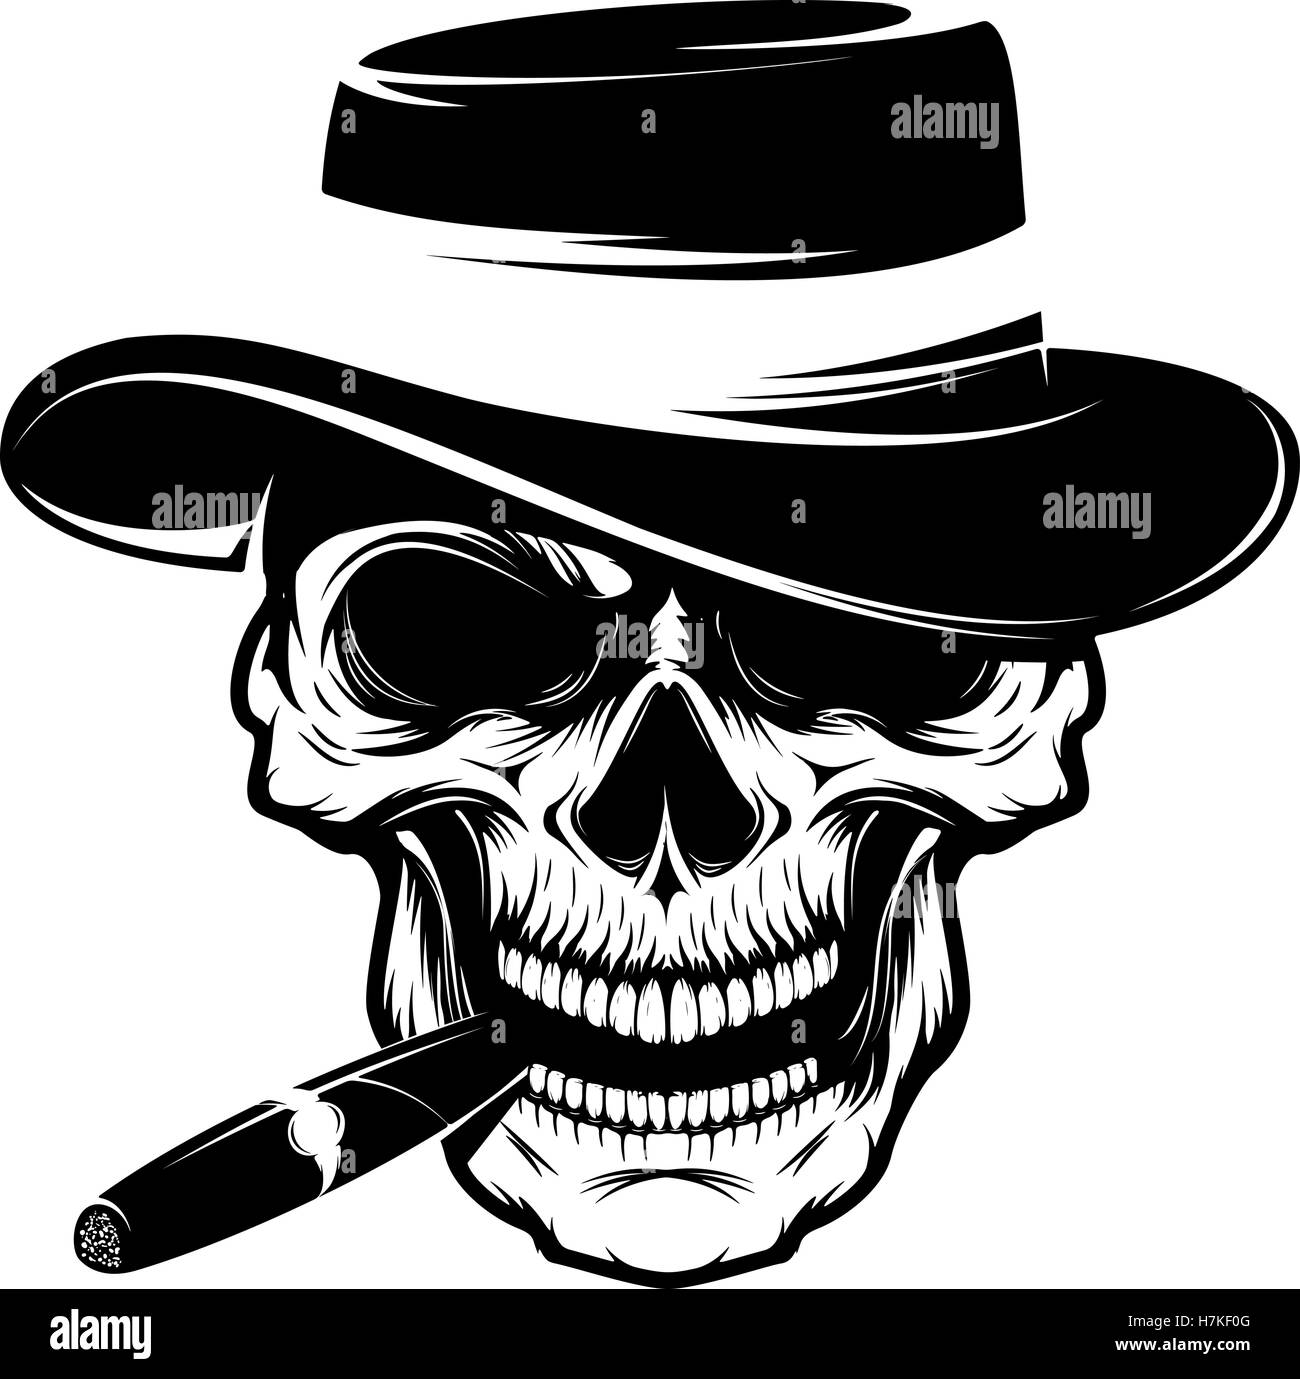 a6ae8f73a785a Skull with cigar and hat. Design element for emblem